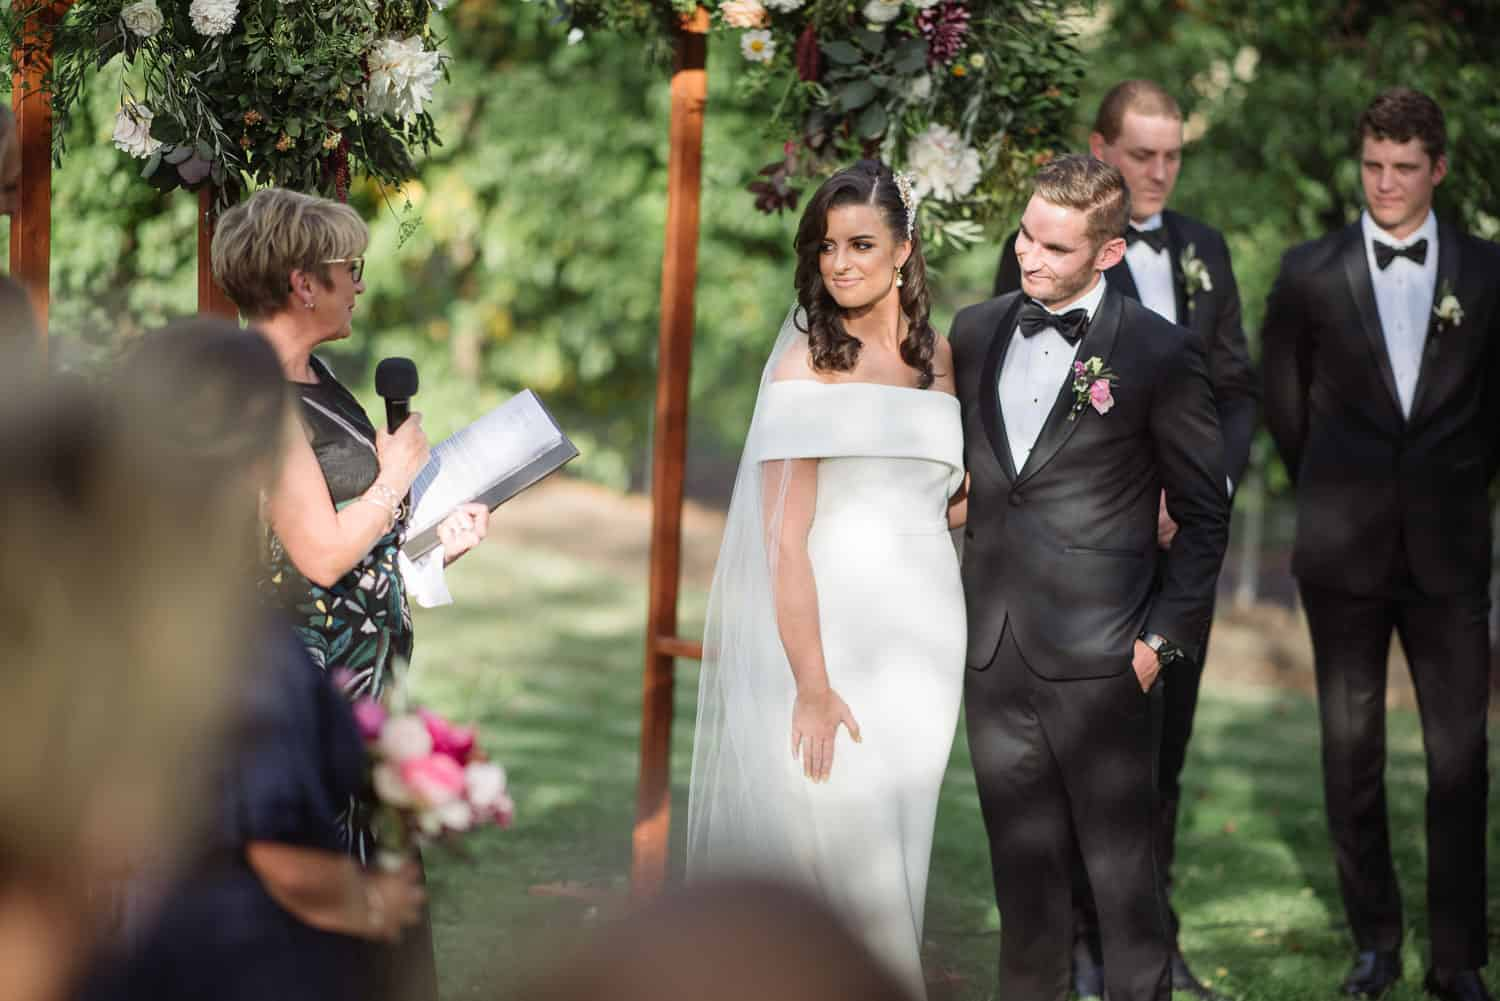 Relaxed speeches at a garden wedding